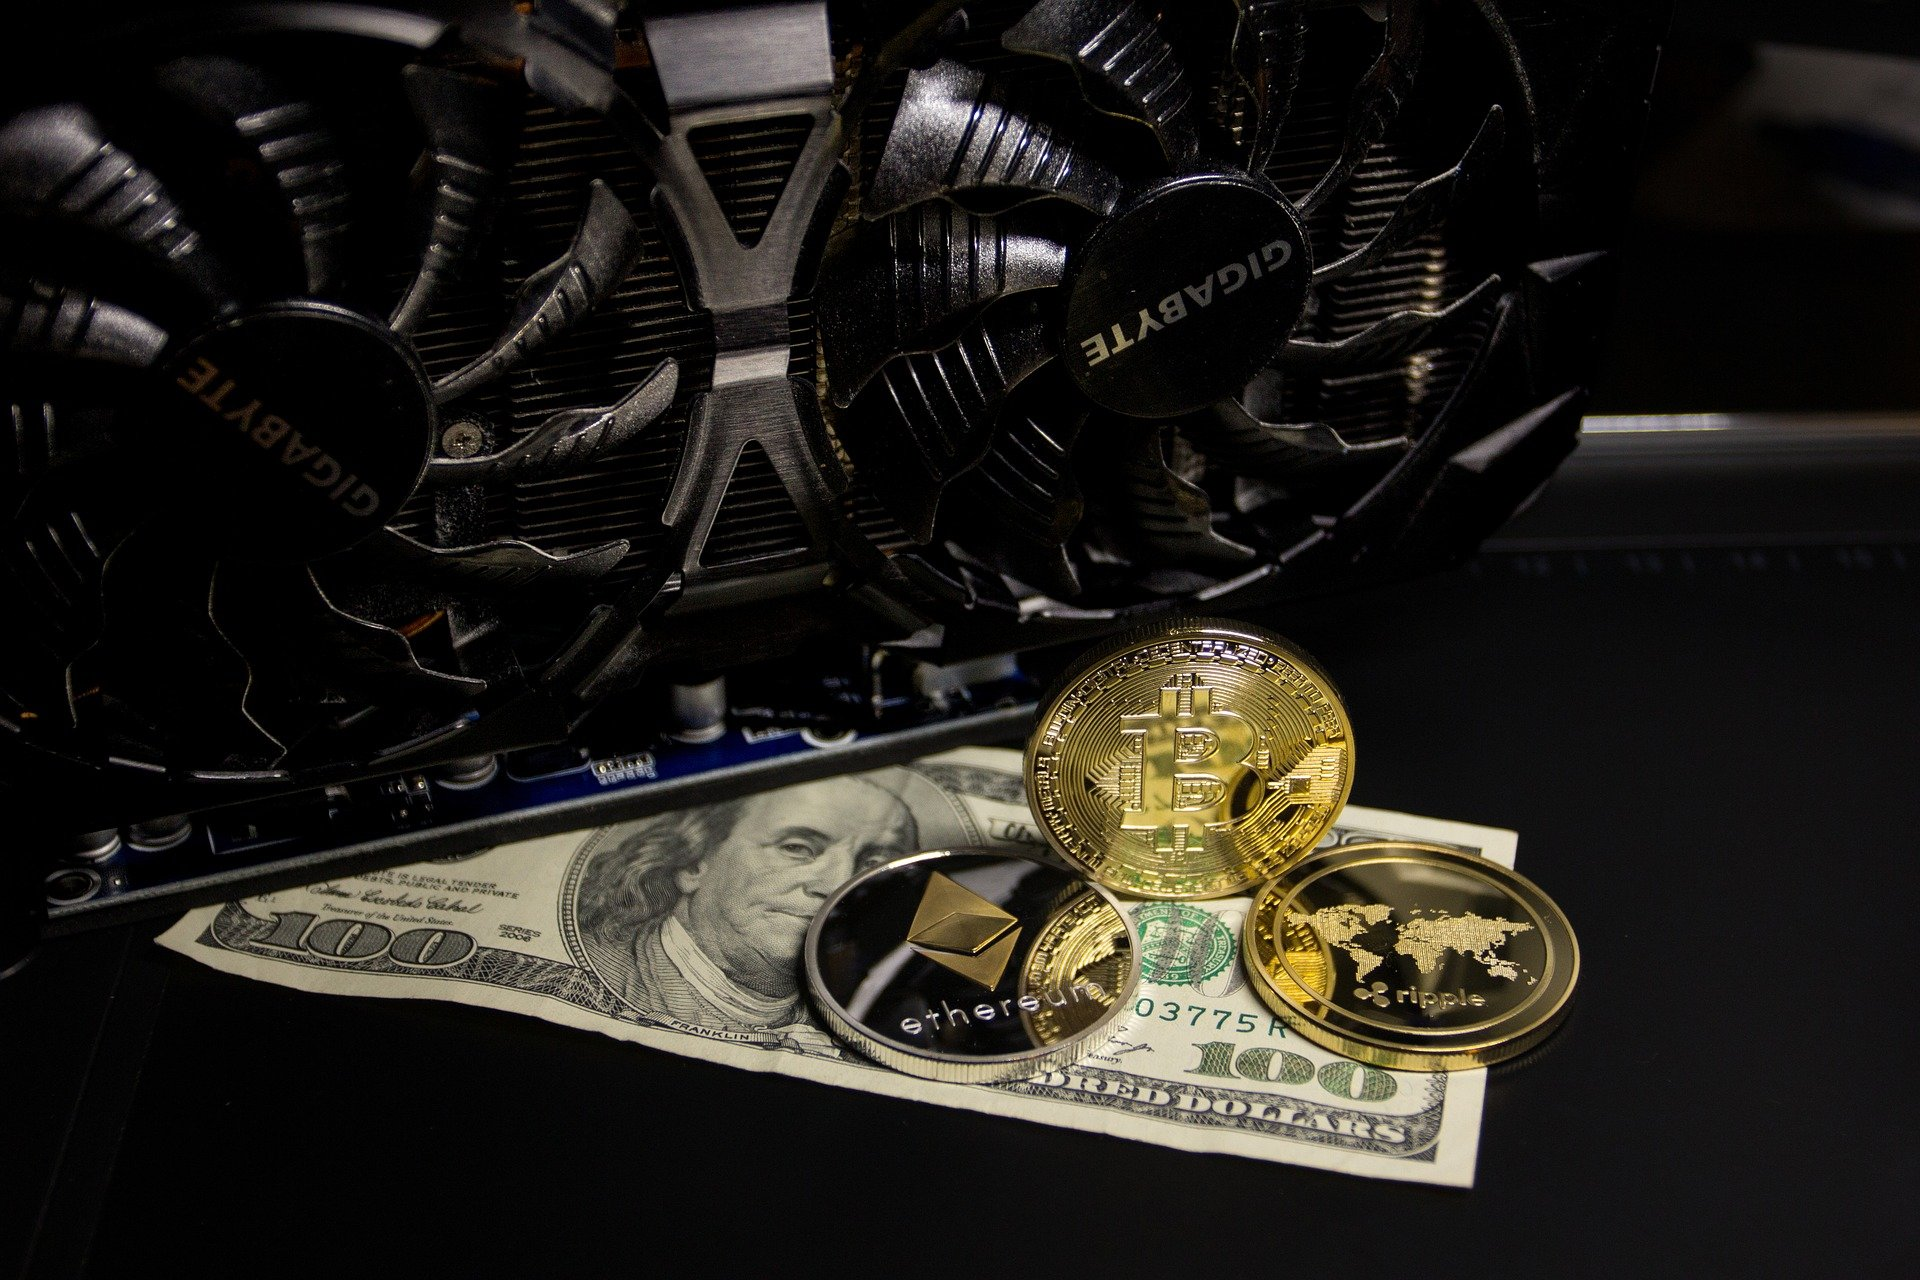 NVIDIA Asks Retailers to Sell Graphics Cards to Gamers Over Cryptocurrency Miners